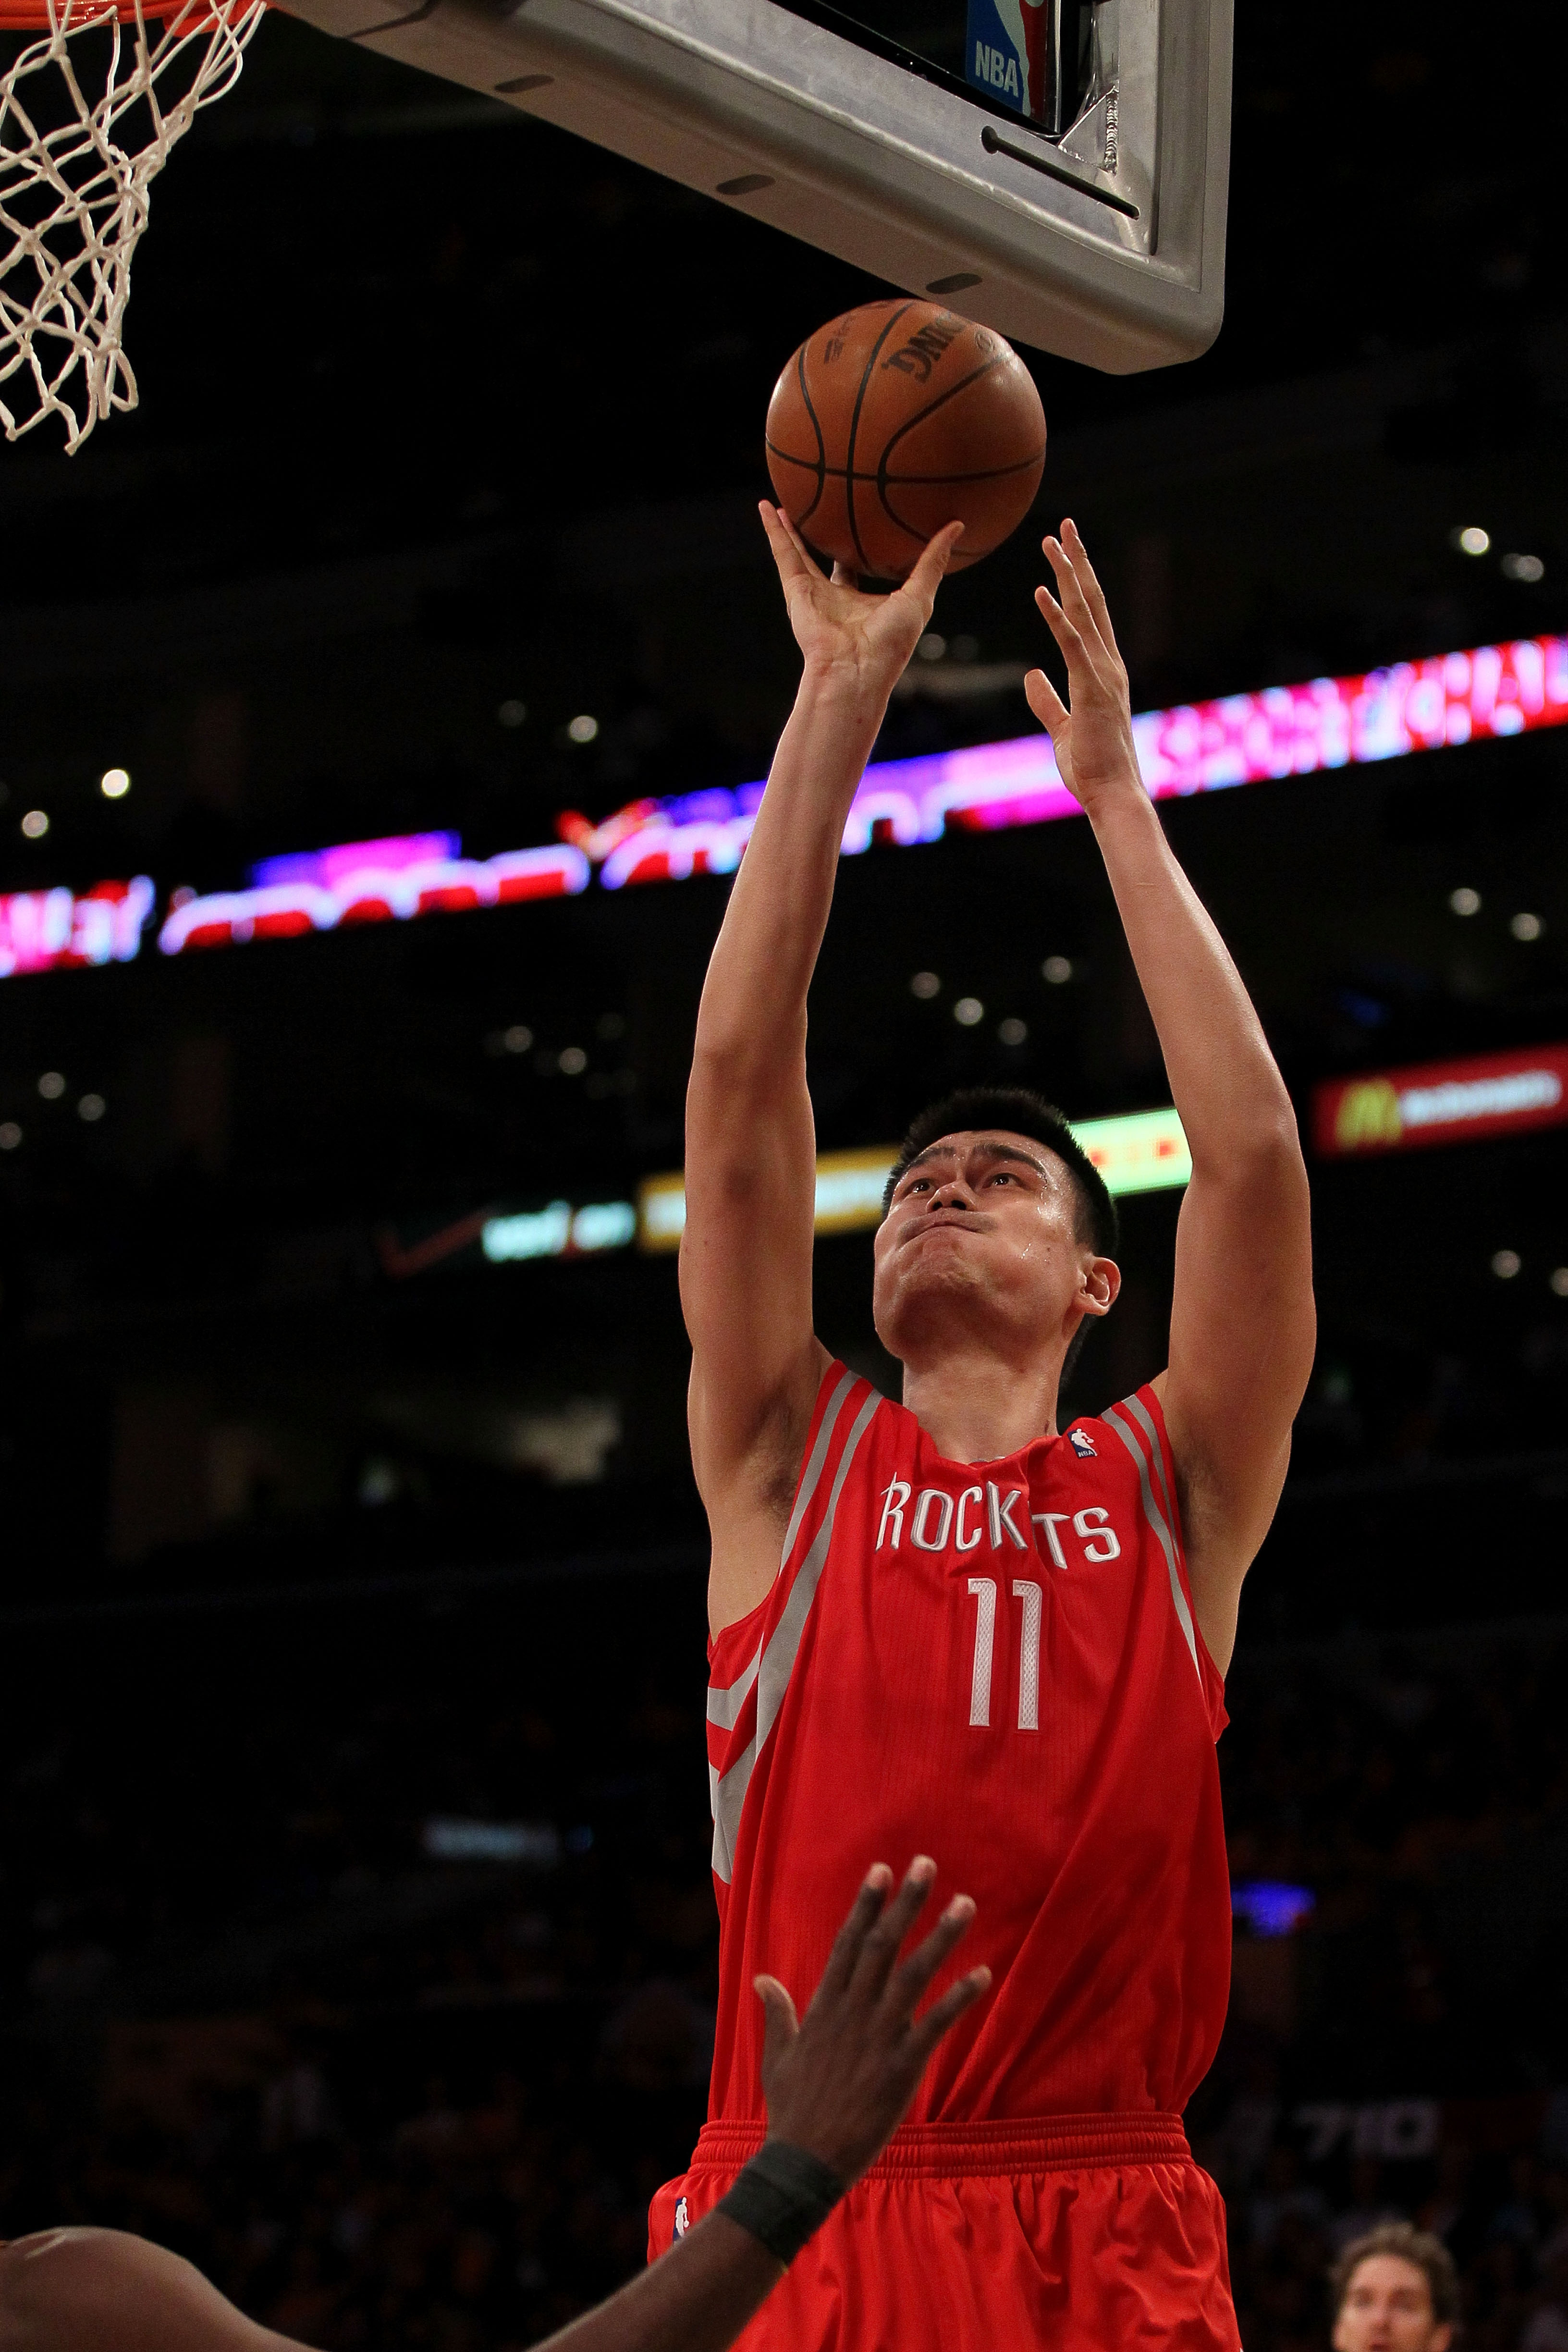 LOS ANGELES, CA - OCTOBER 26:  Yao Ming #11 of the Houston Rockets takes a shot against the Los Angeles Lakers during their game at Staples Center on October 26, 2010 in Los Angeles, California. NOTE TO USER: User expressly acknowledges and agrees that, b